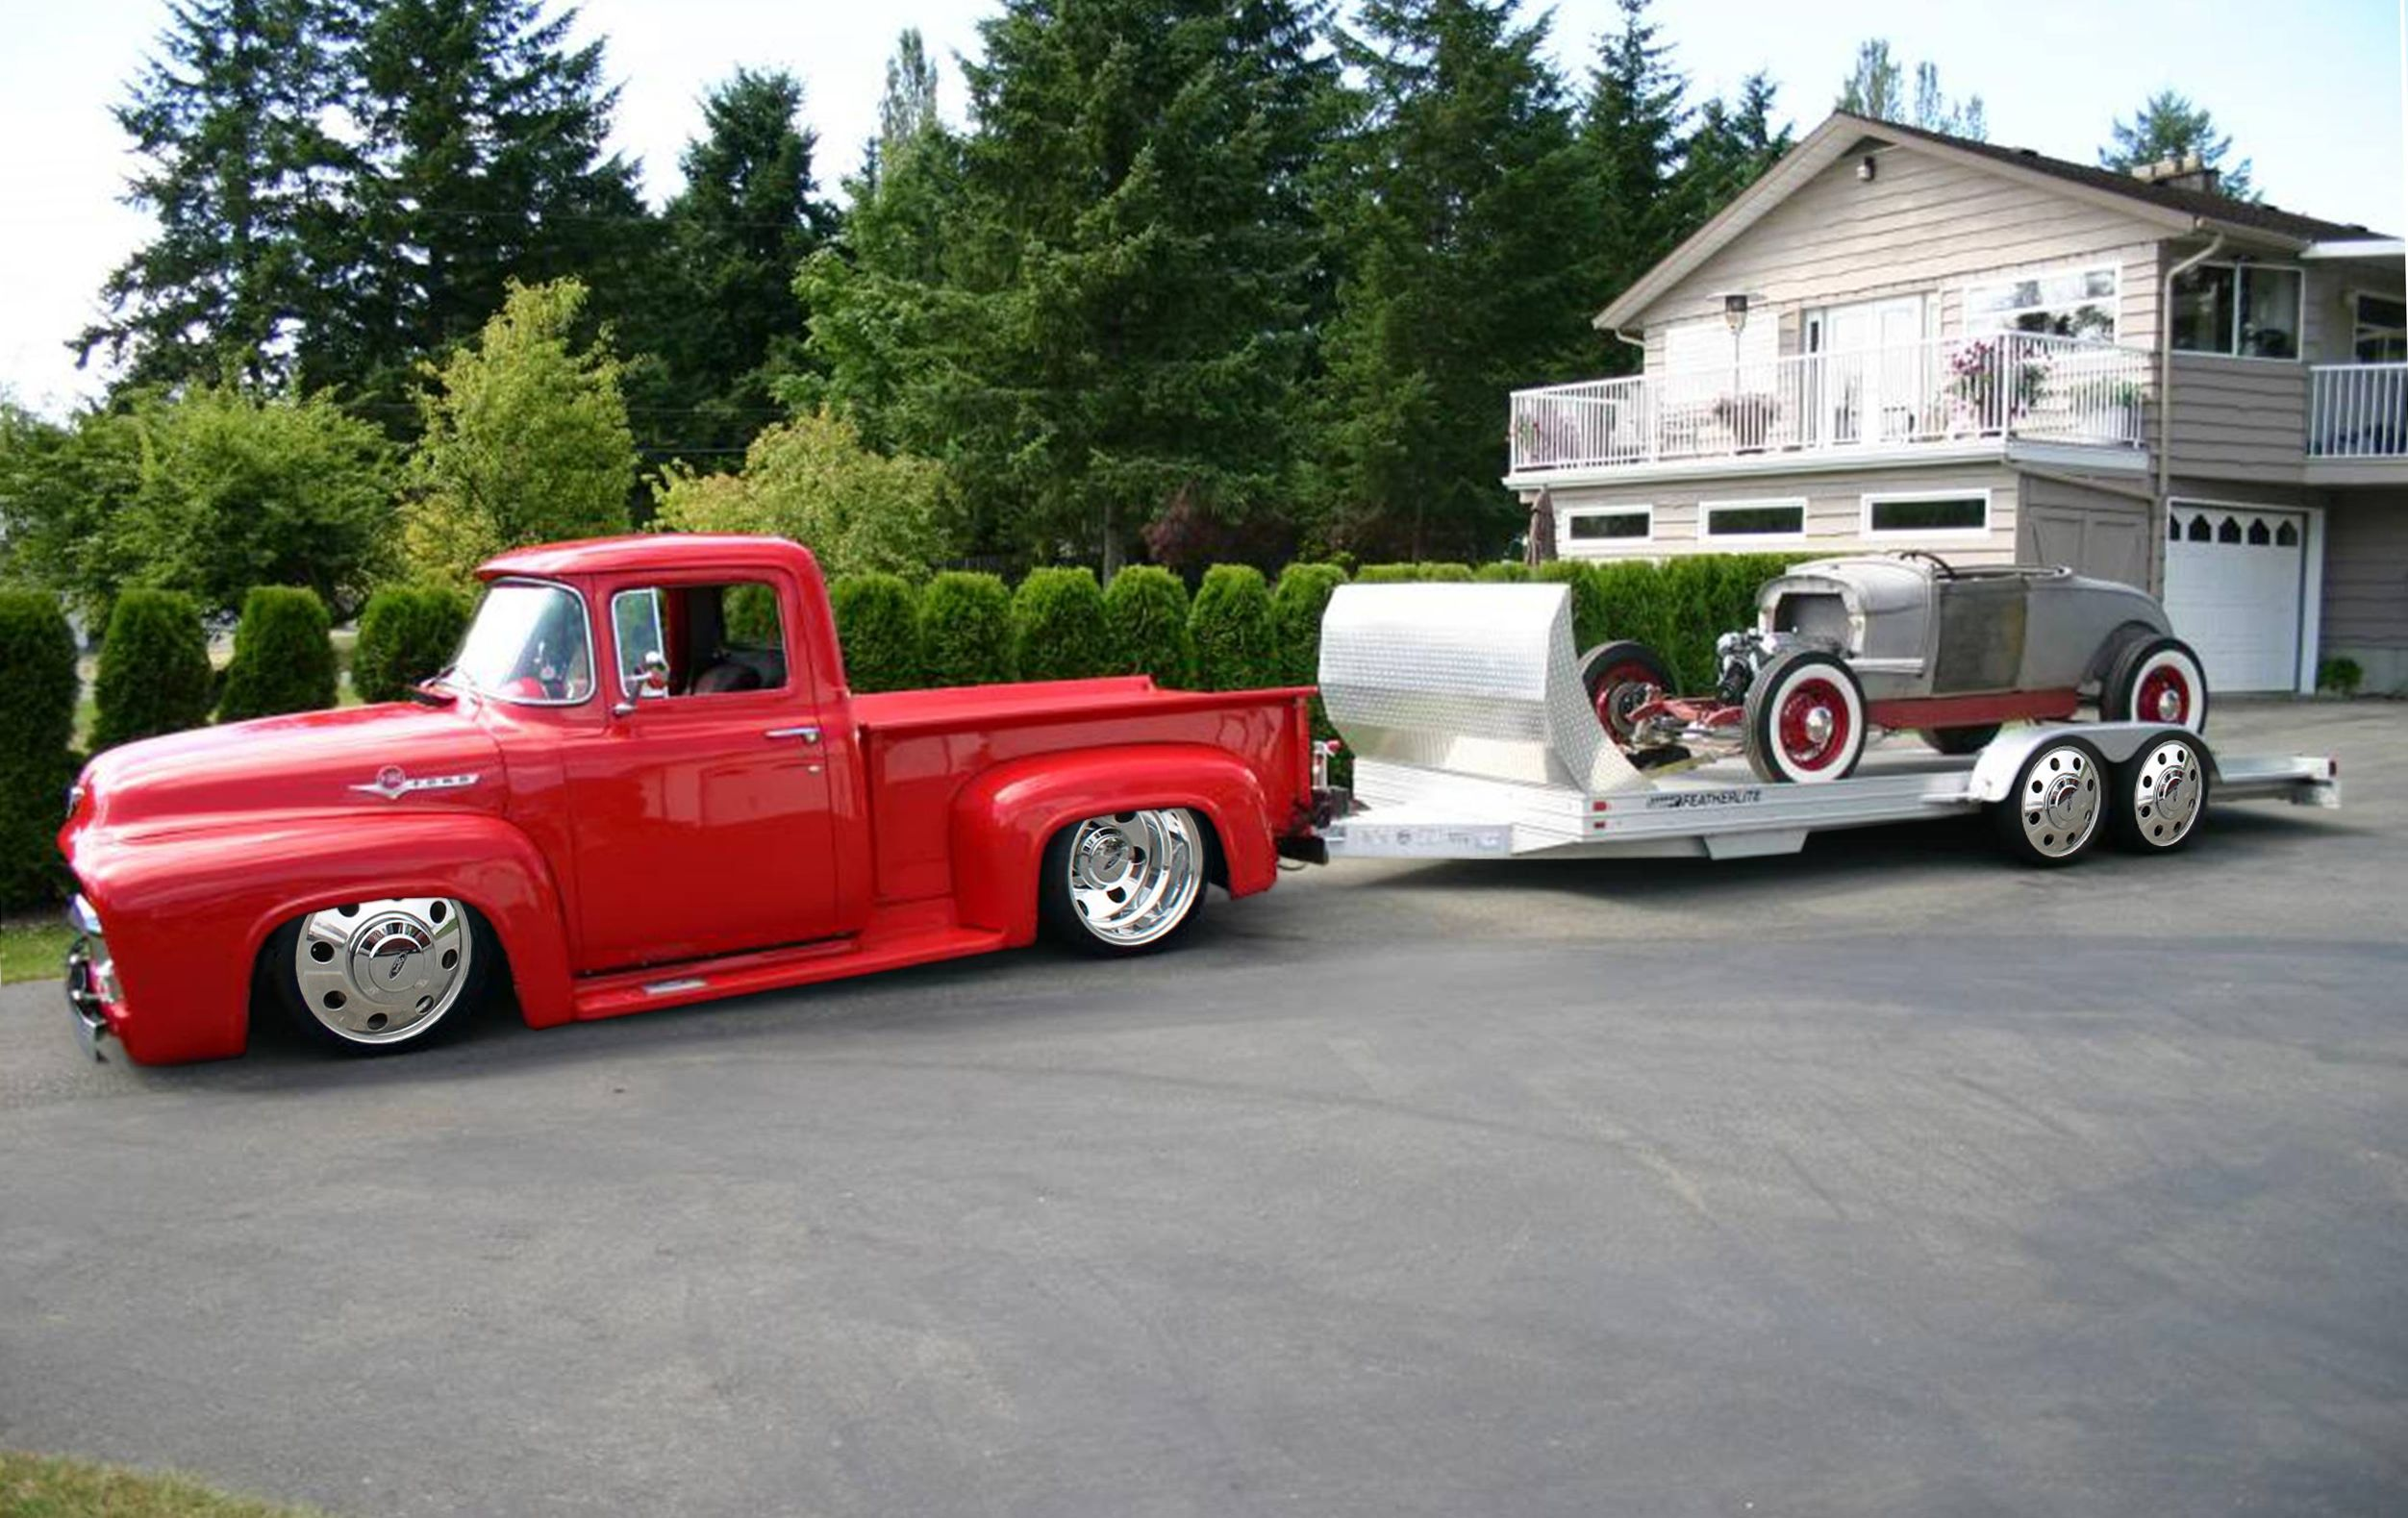 1955 ford f 100 like going fast call or click 1 877 infraction com 877 463 7228 for local lawyers aggressively defending traffic tickets